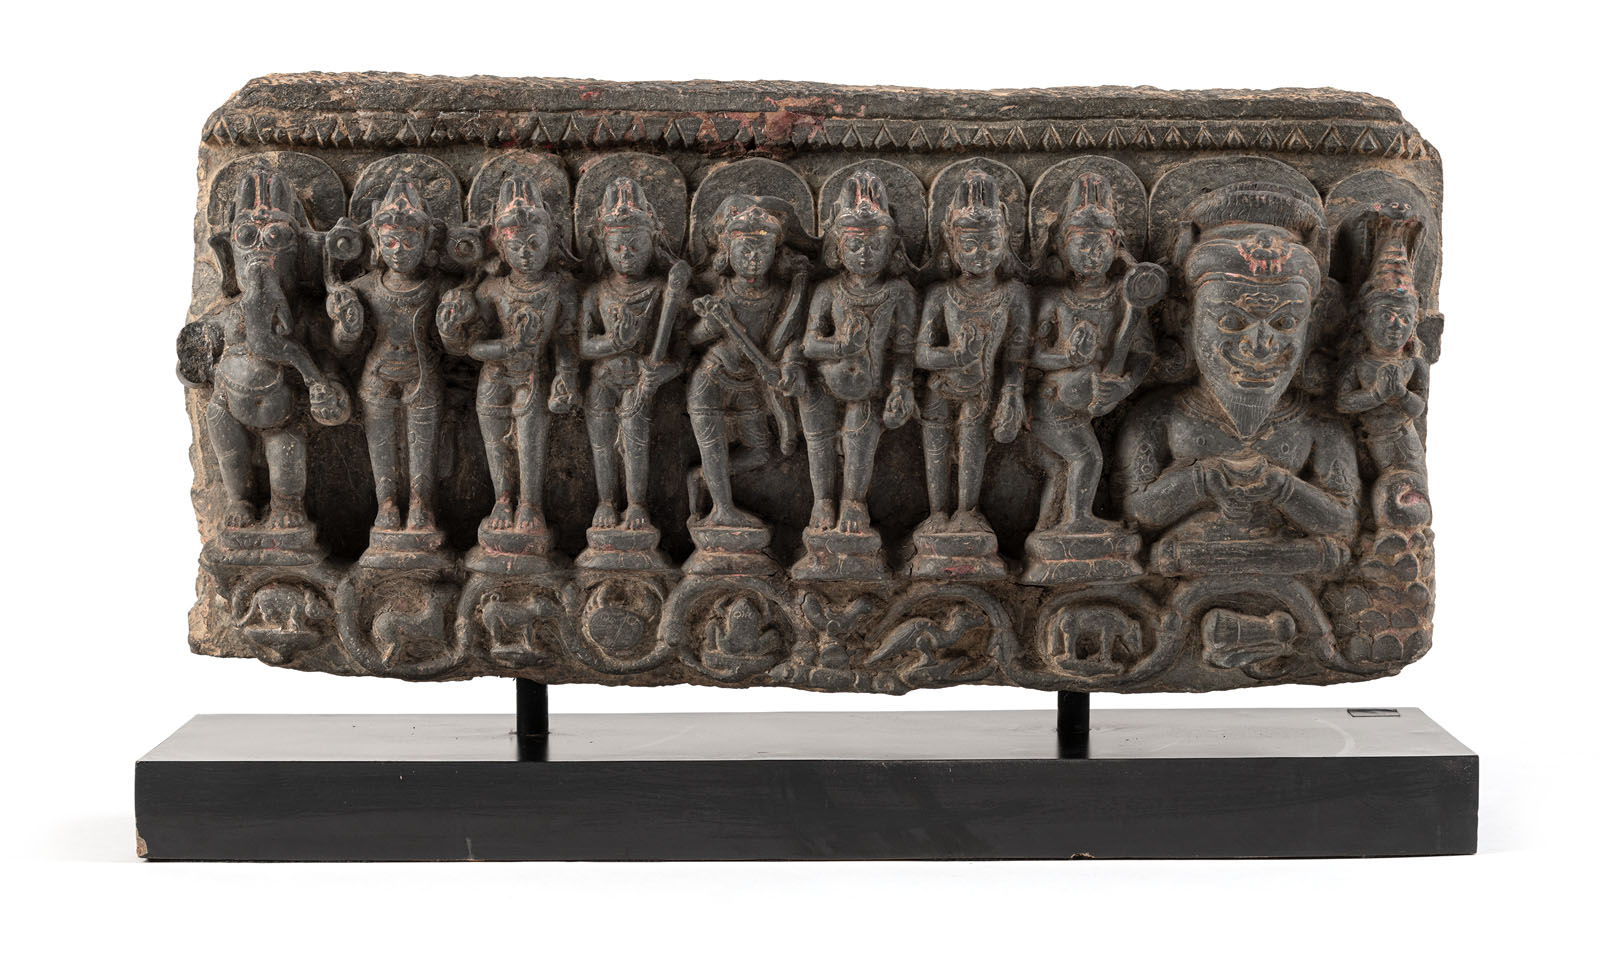 A PHYLLITE STONE STELE DEPICTING THE NINE PLANETS, NAVAGRAHA